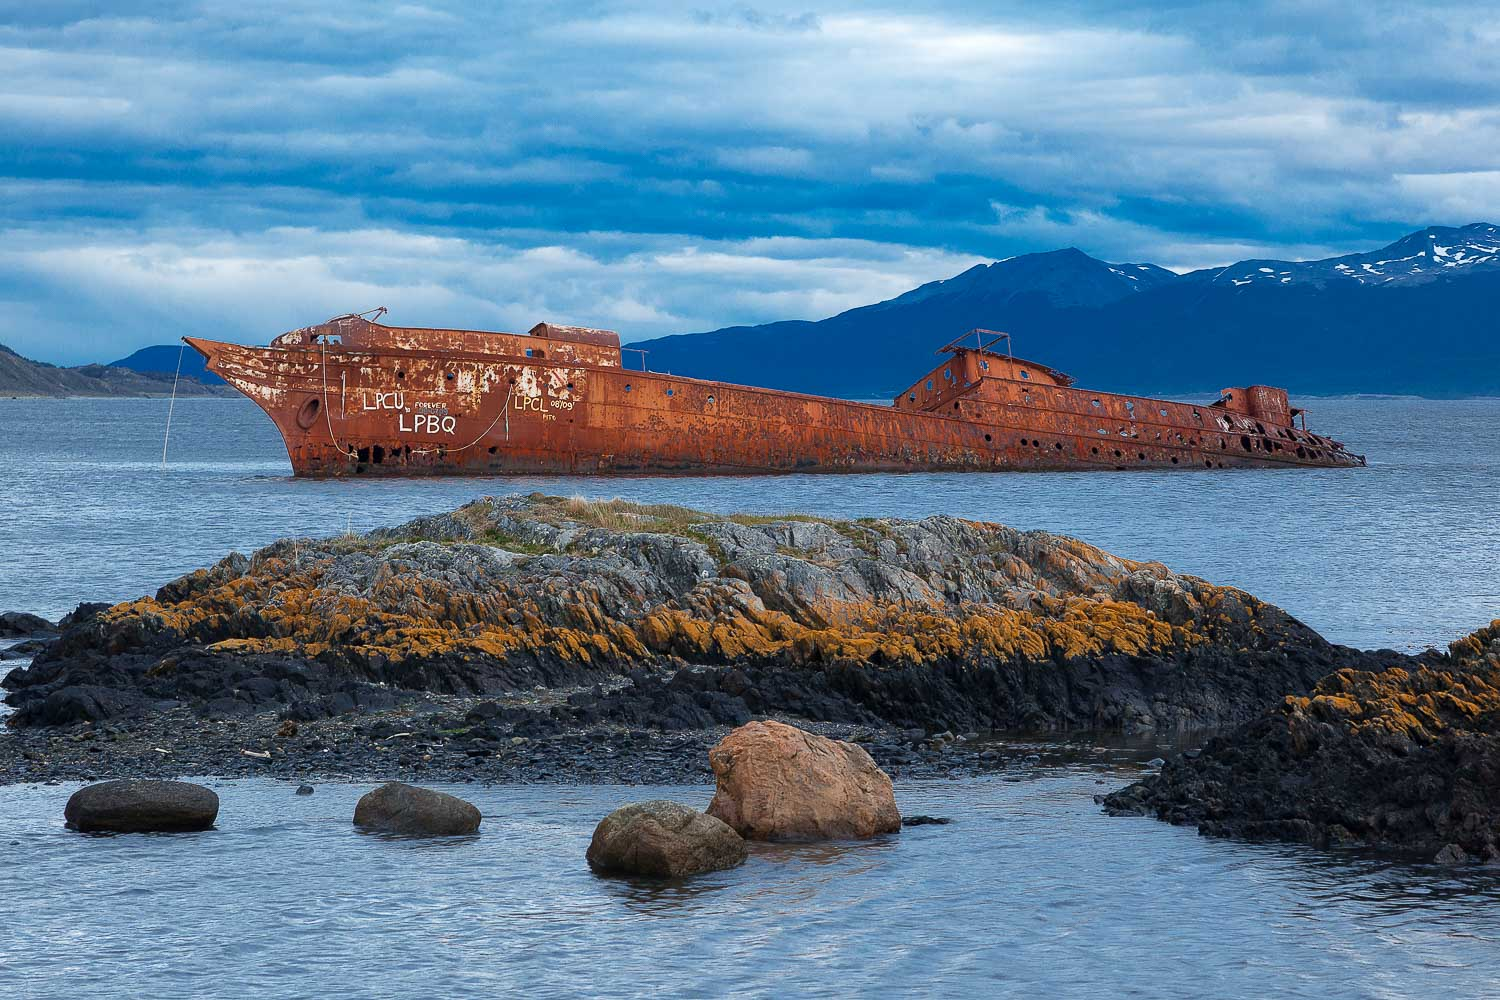 A ship, now no more than a rusting hulk, lies in a bay near the city of    Ushuaia    in the far south of    Argentina   . The orange color of the ship is illuminated by the gentle sunlight and is a striking contrast against the predominantly bluish light resulting from gathering storm clouds.